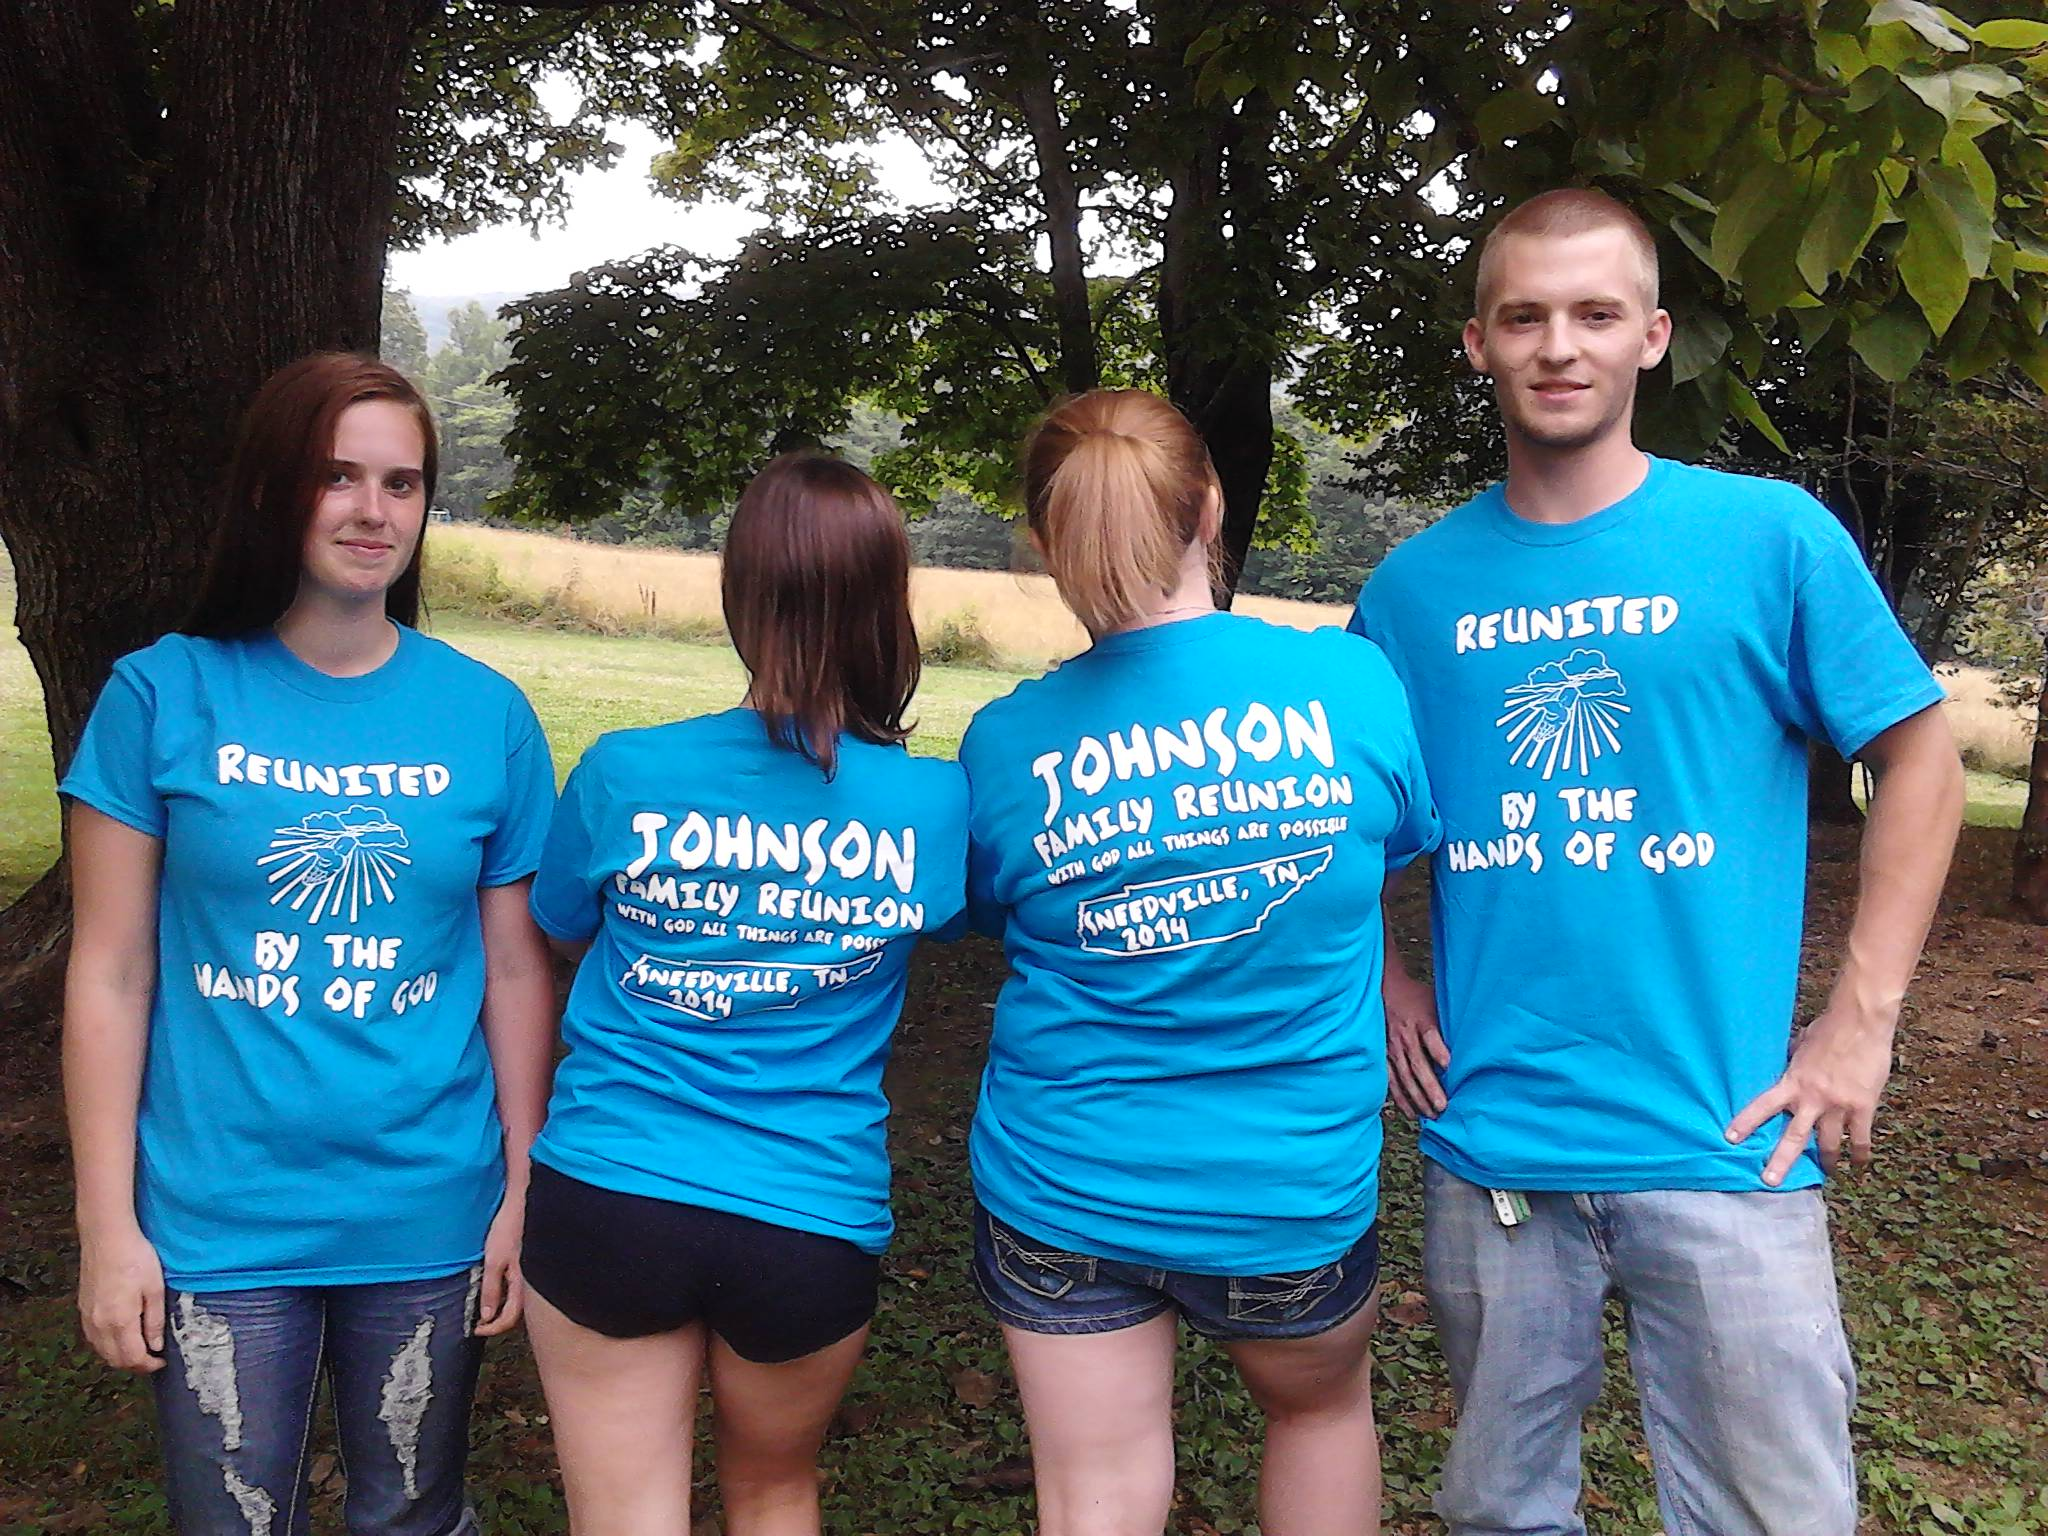 Johnson Family Reunion T Shirt Photo